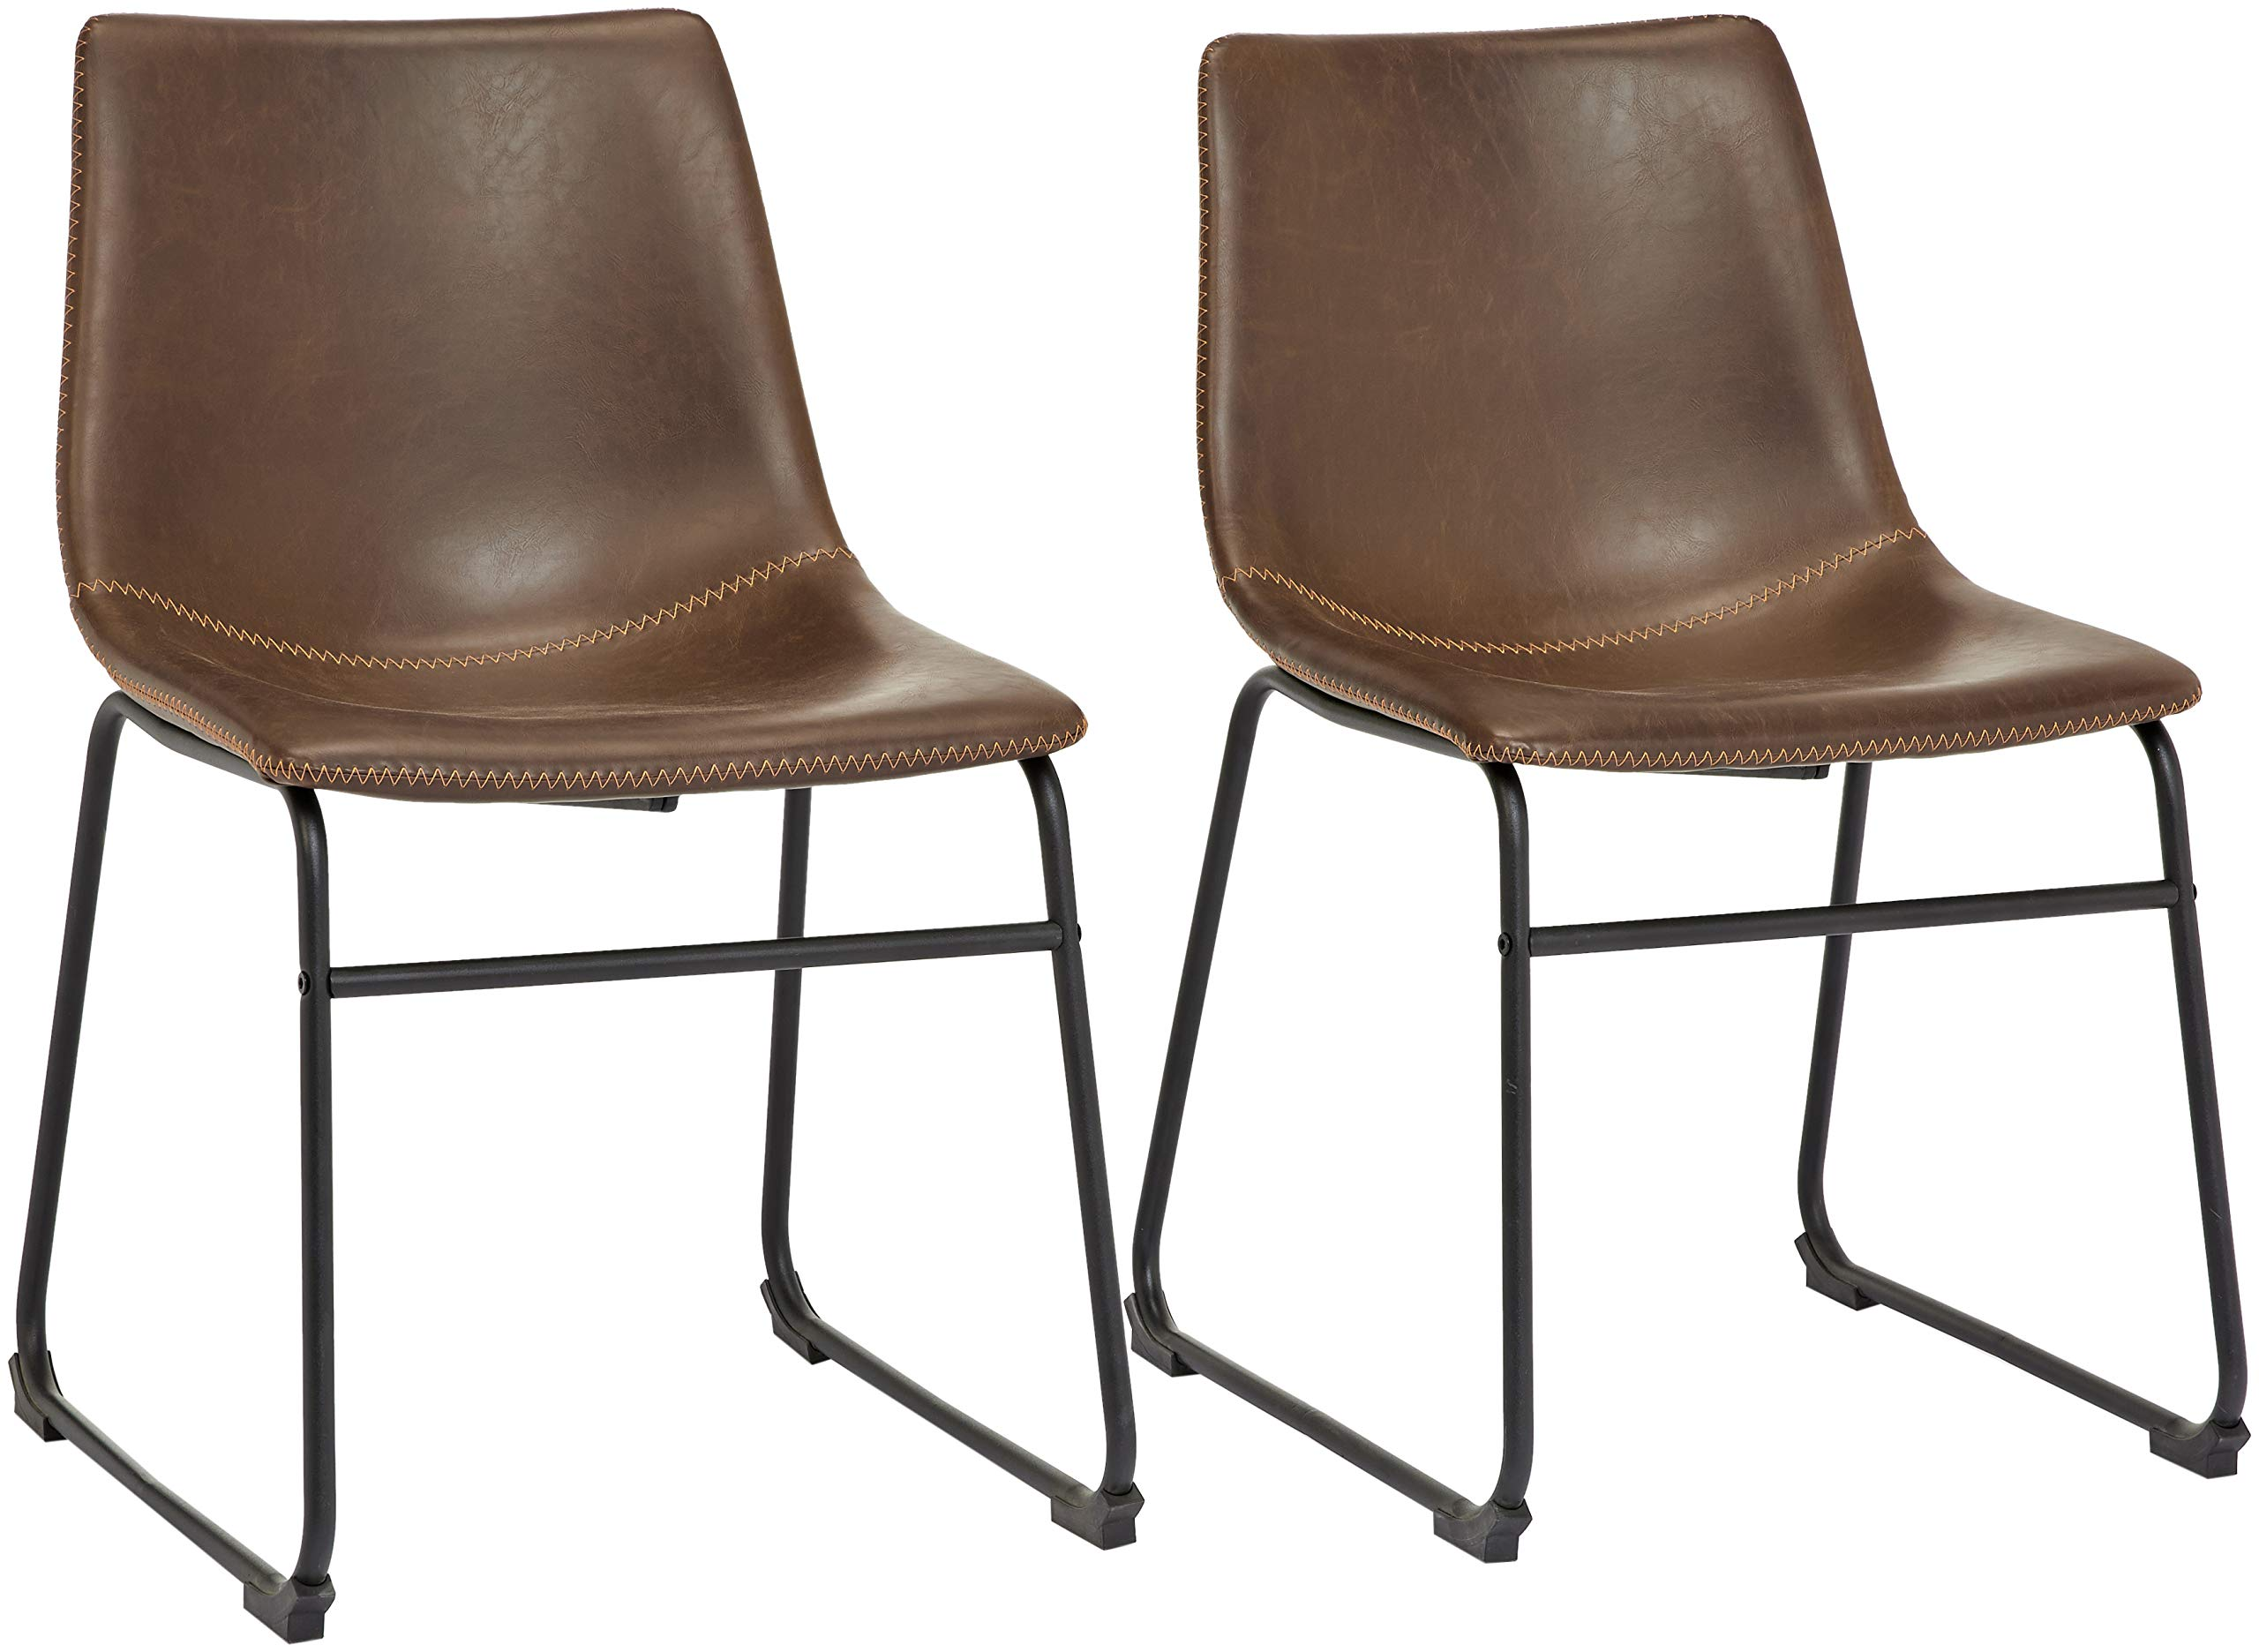 Phoenix Home PU Leather Dining Chair Set of 2, 18.11'' Length x 21.65'' Width x 30.7'' Height, Brown by Phoenix Home